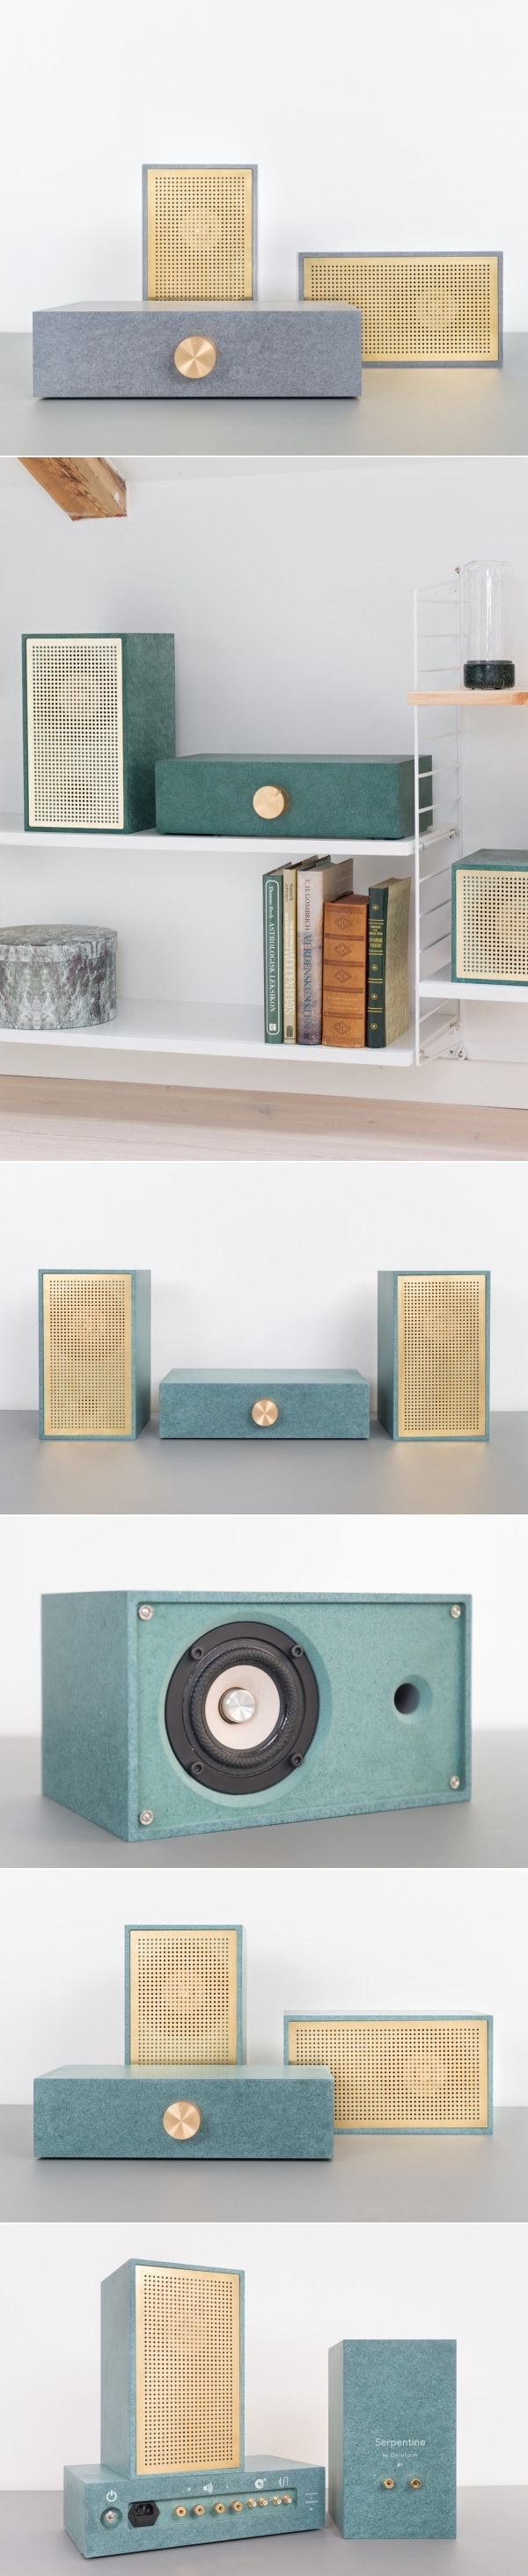 Stunningly Simple: Osloform Serpentine Stereo - Design Milk